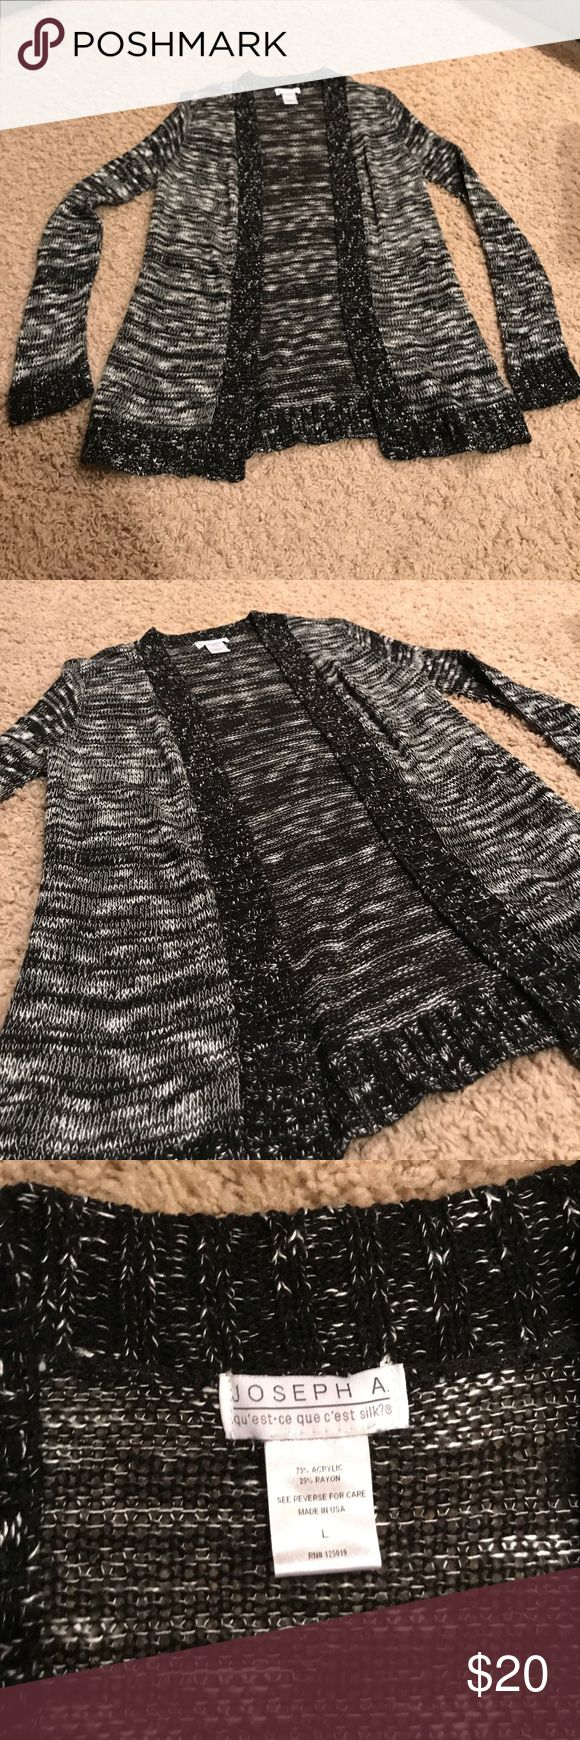 Black and white cardigan! Black and white cardigan. Gently worn. Very soft and cozy! Joseph Allen Sweaters Cardigans